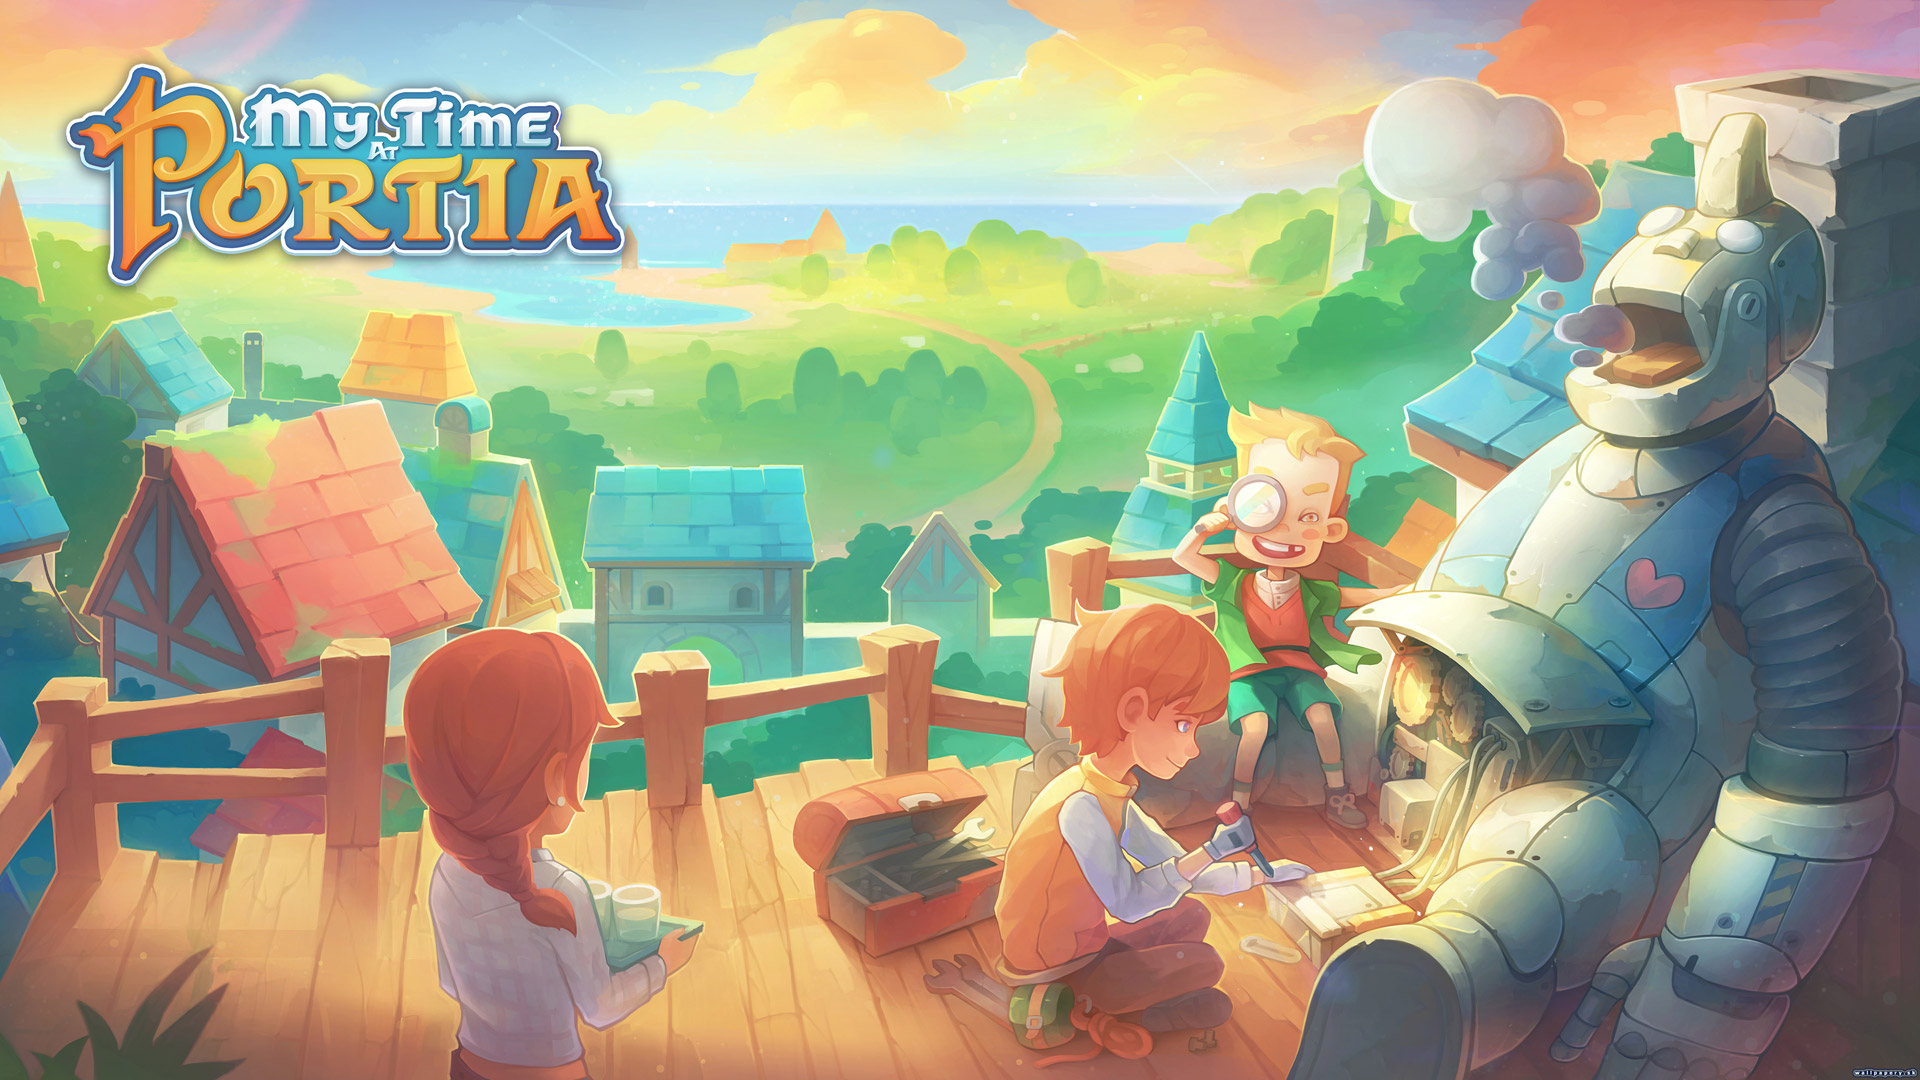 Free My Time at Portia Wallpaper in 1920x1080